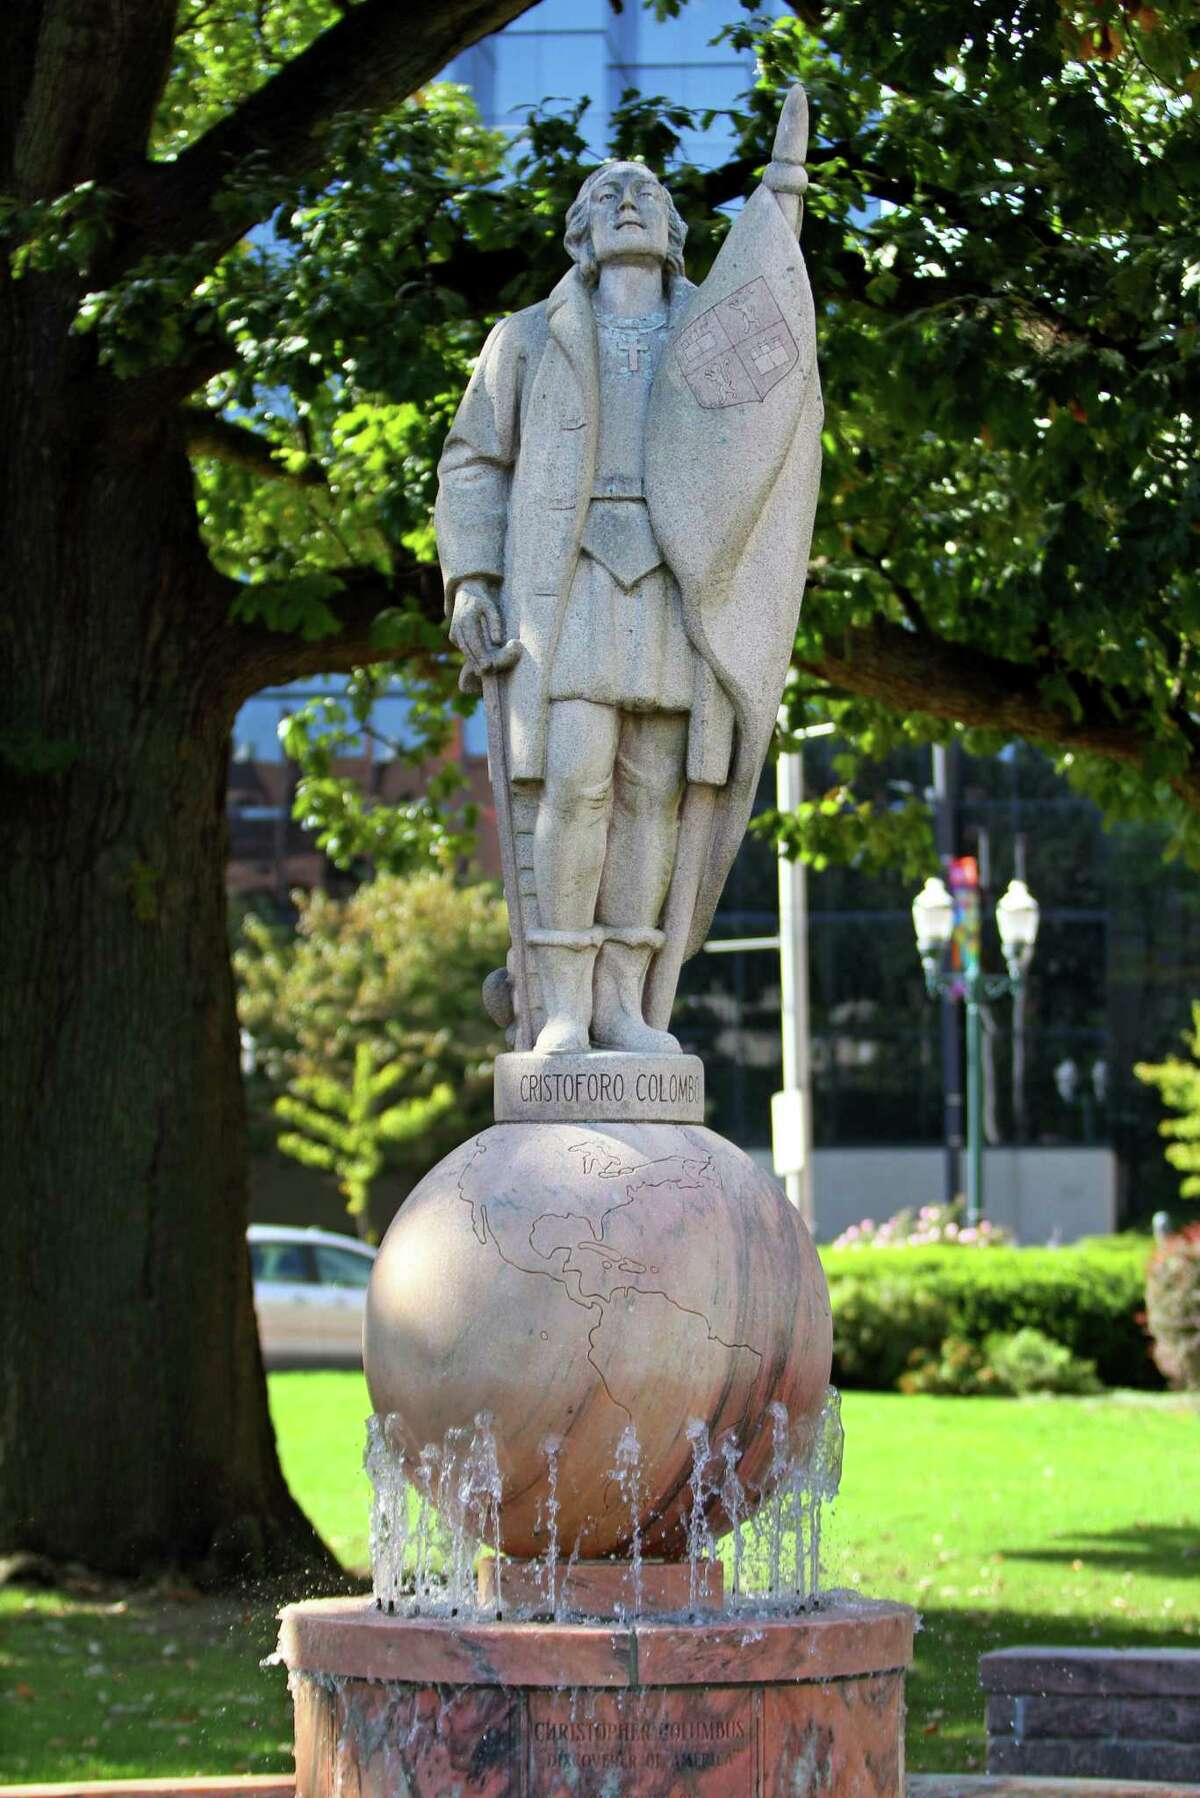 A view of the Christopher Columbus statue at Columbus Park in Stamford, Conn., on Thursday October 7, 2021. A local Italian organization is planning a small event at the statue on Columbus Day, but the city is still not sure if it will be removed or not.